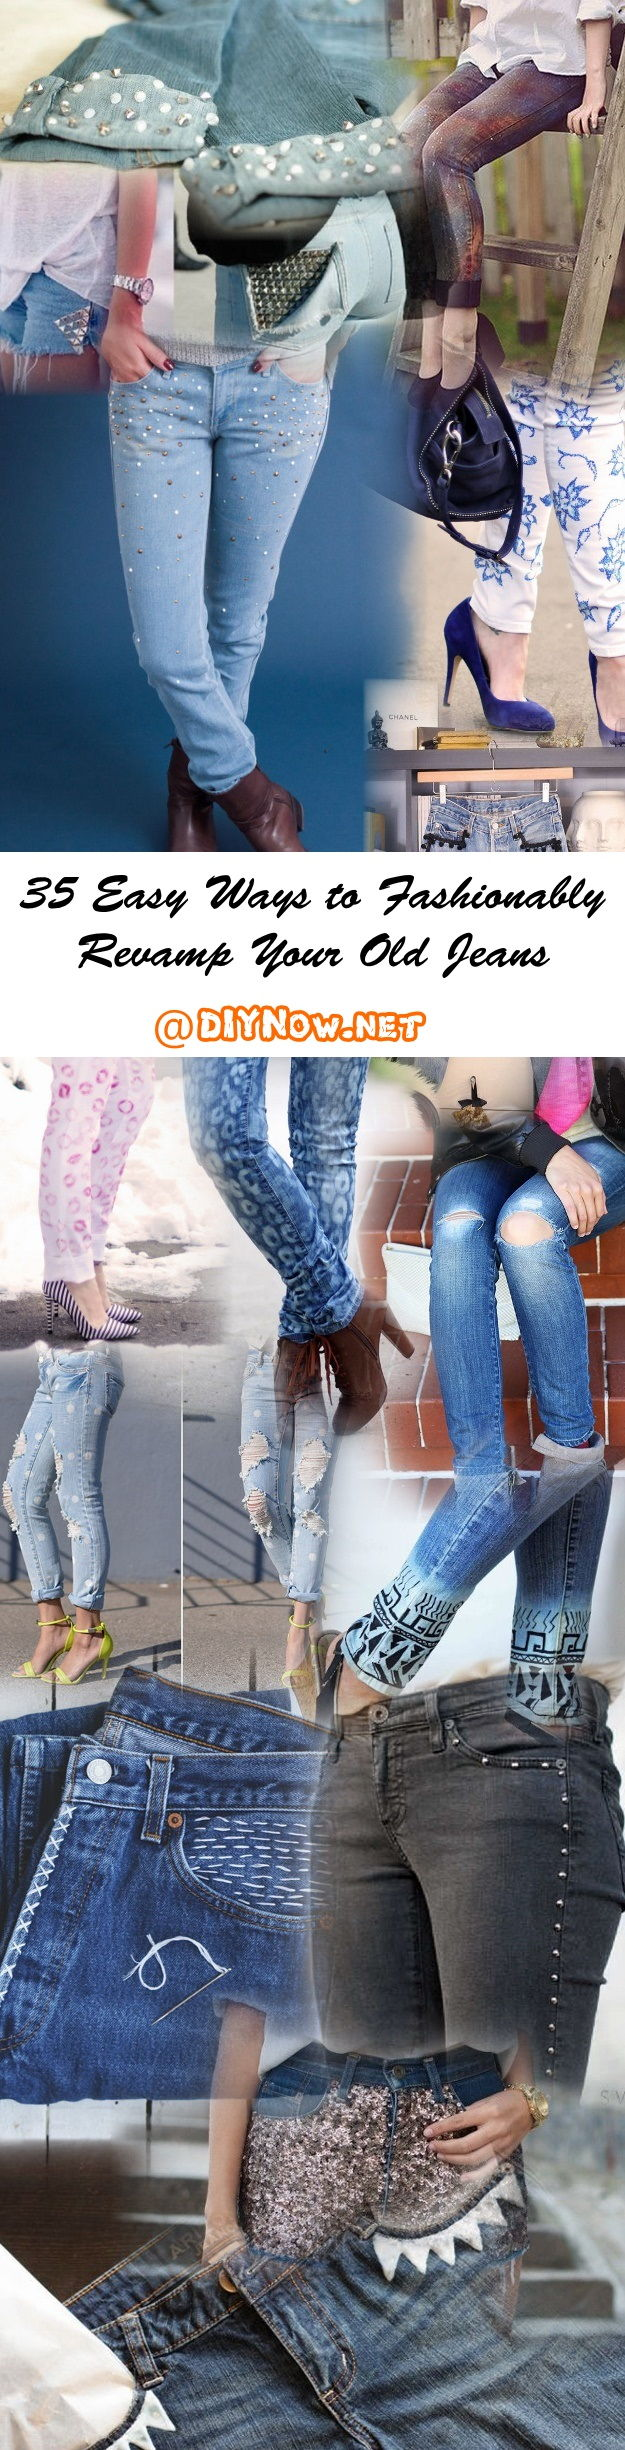 35 Easy Ways to Fashionably Revamp Your Old Jeans